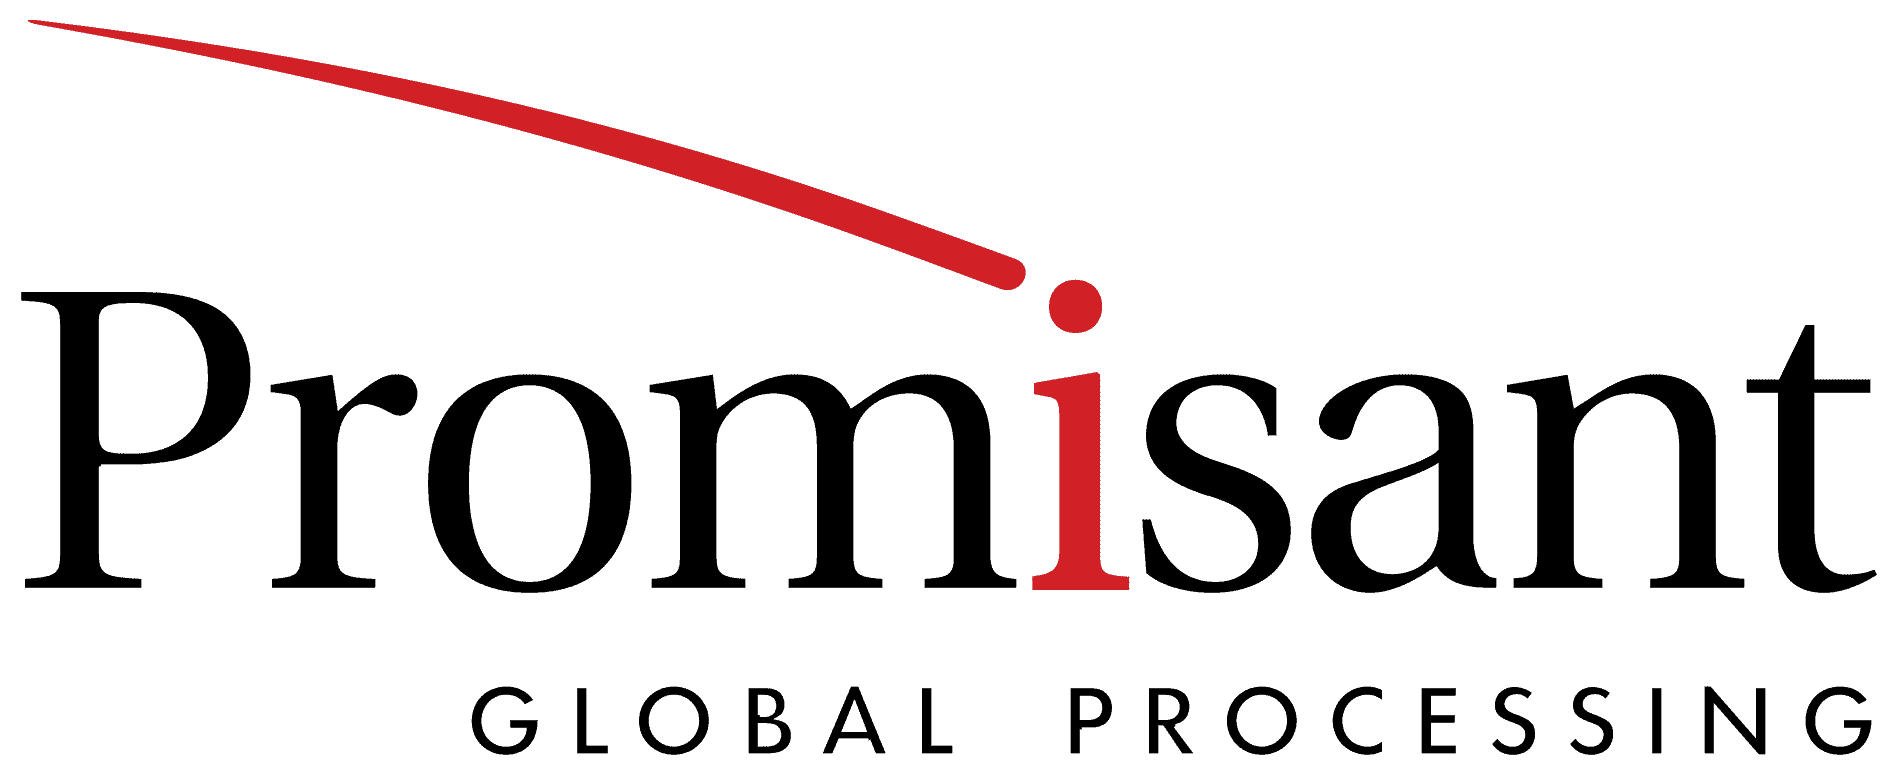 Promisant Global Processing